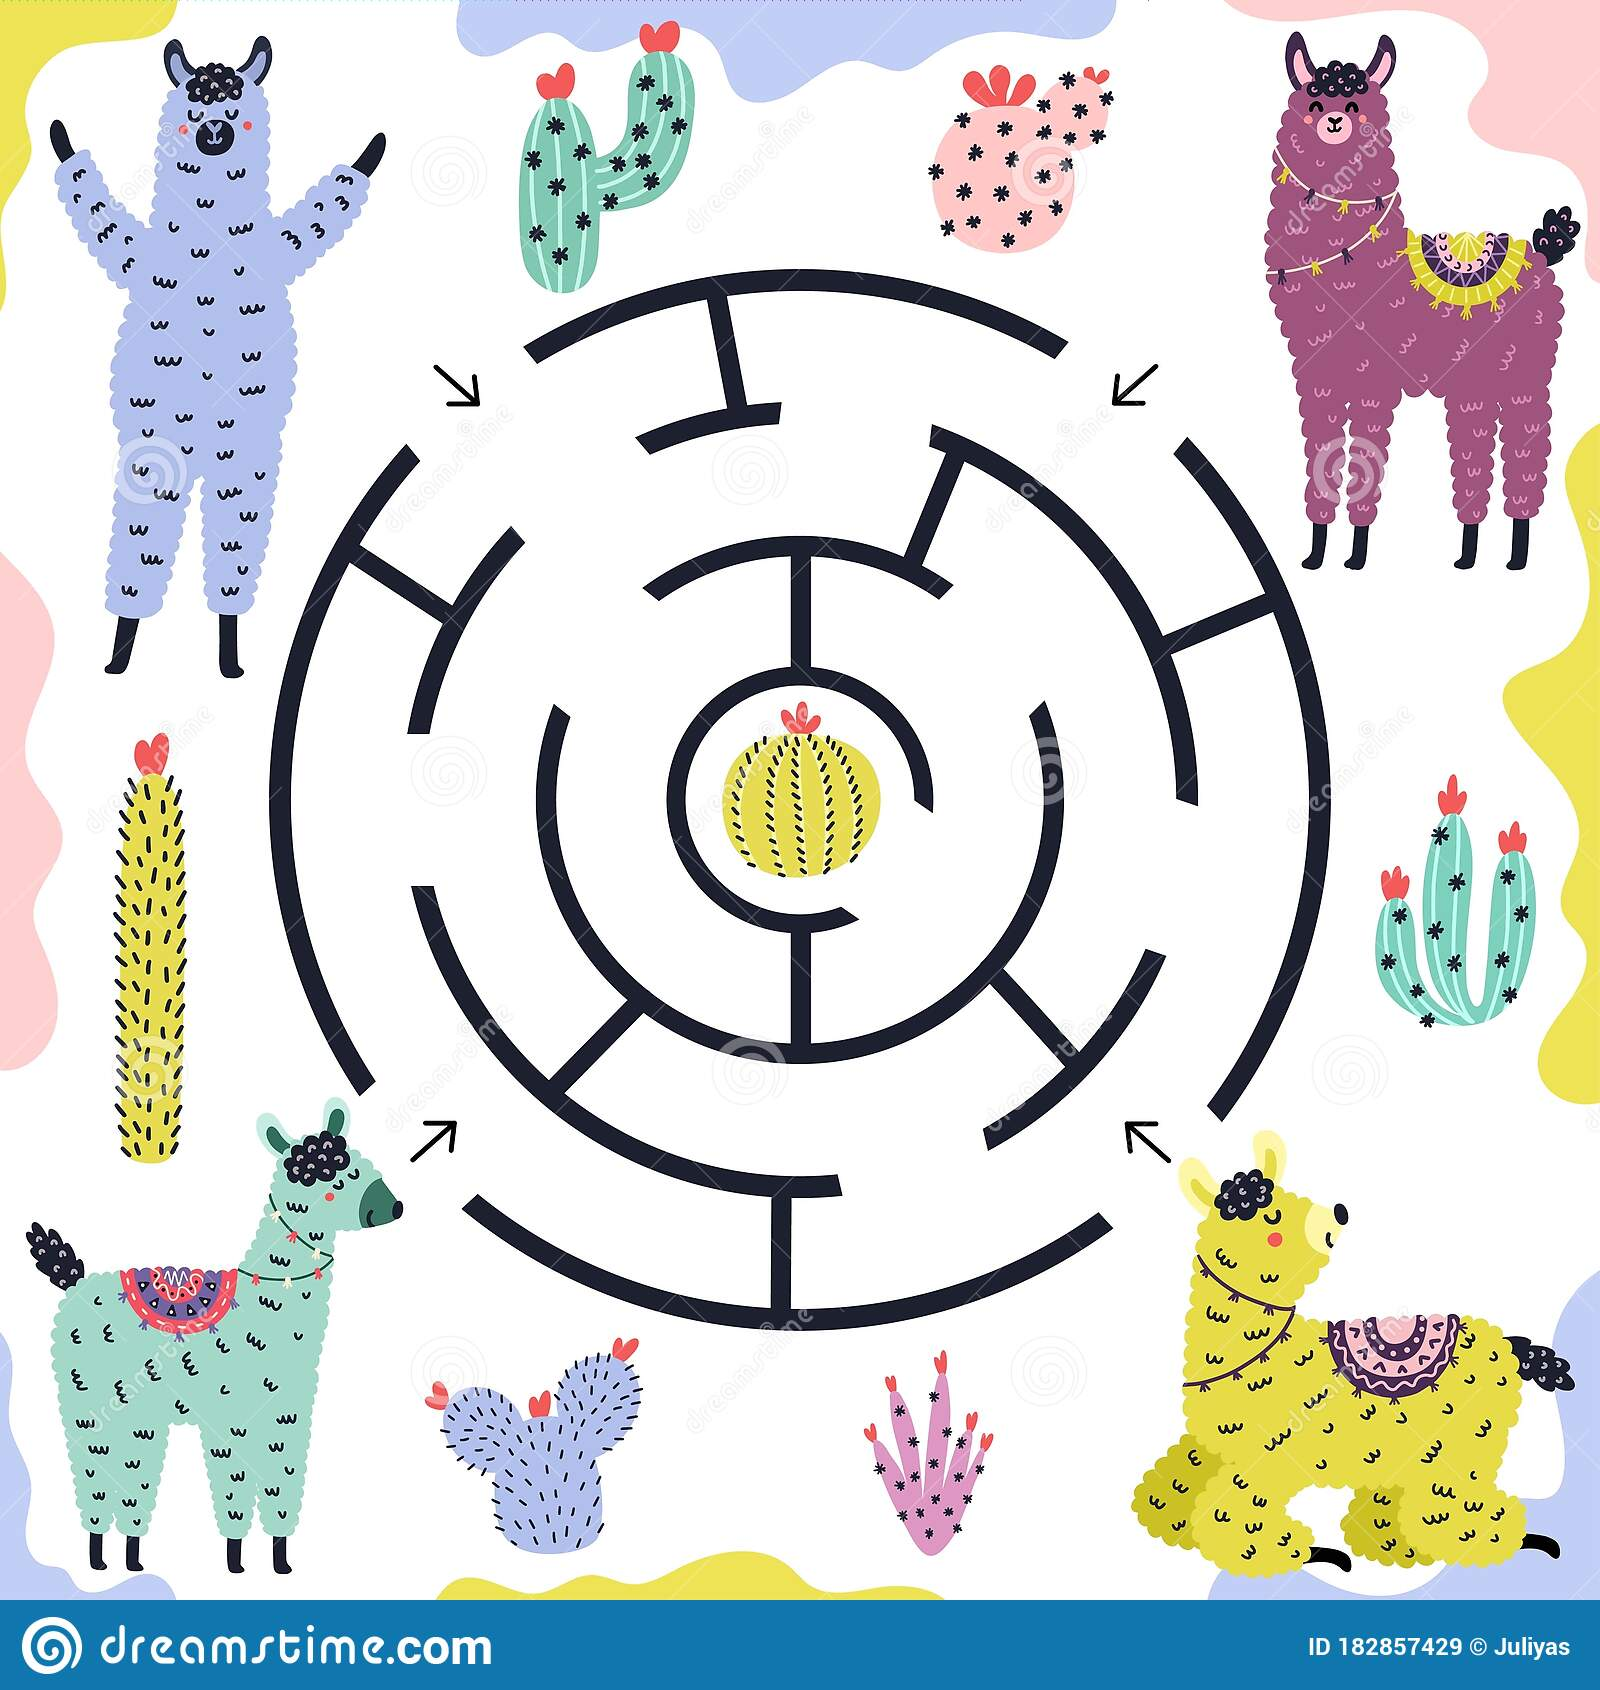 Which Llama Gets To The Cactus Funny Maze Game For Kids